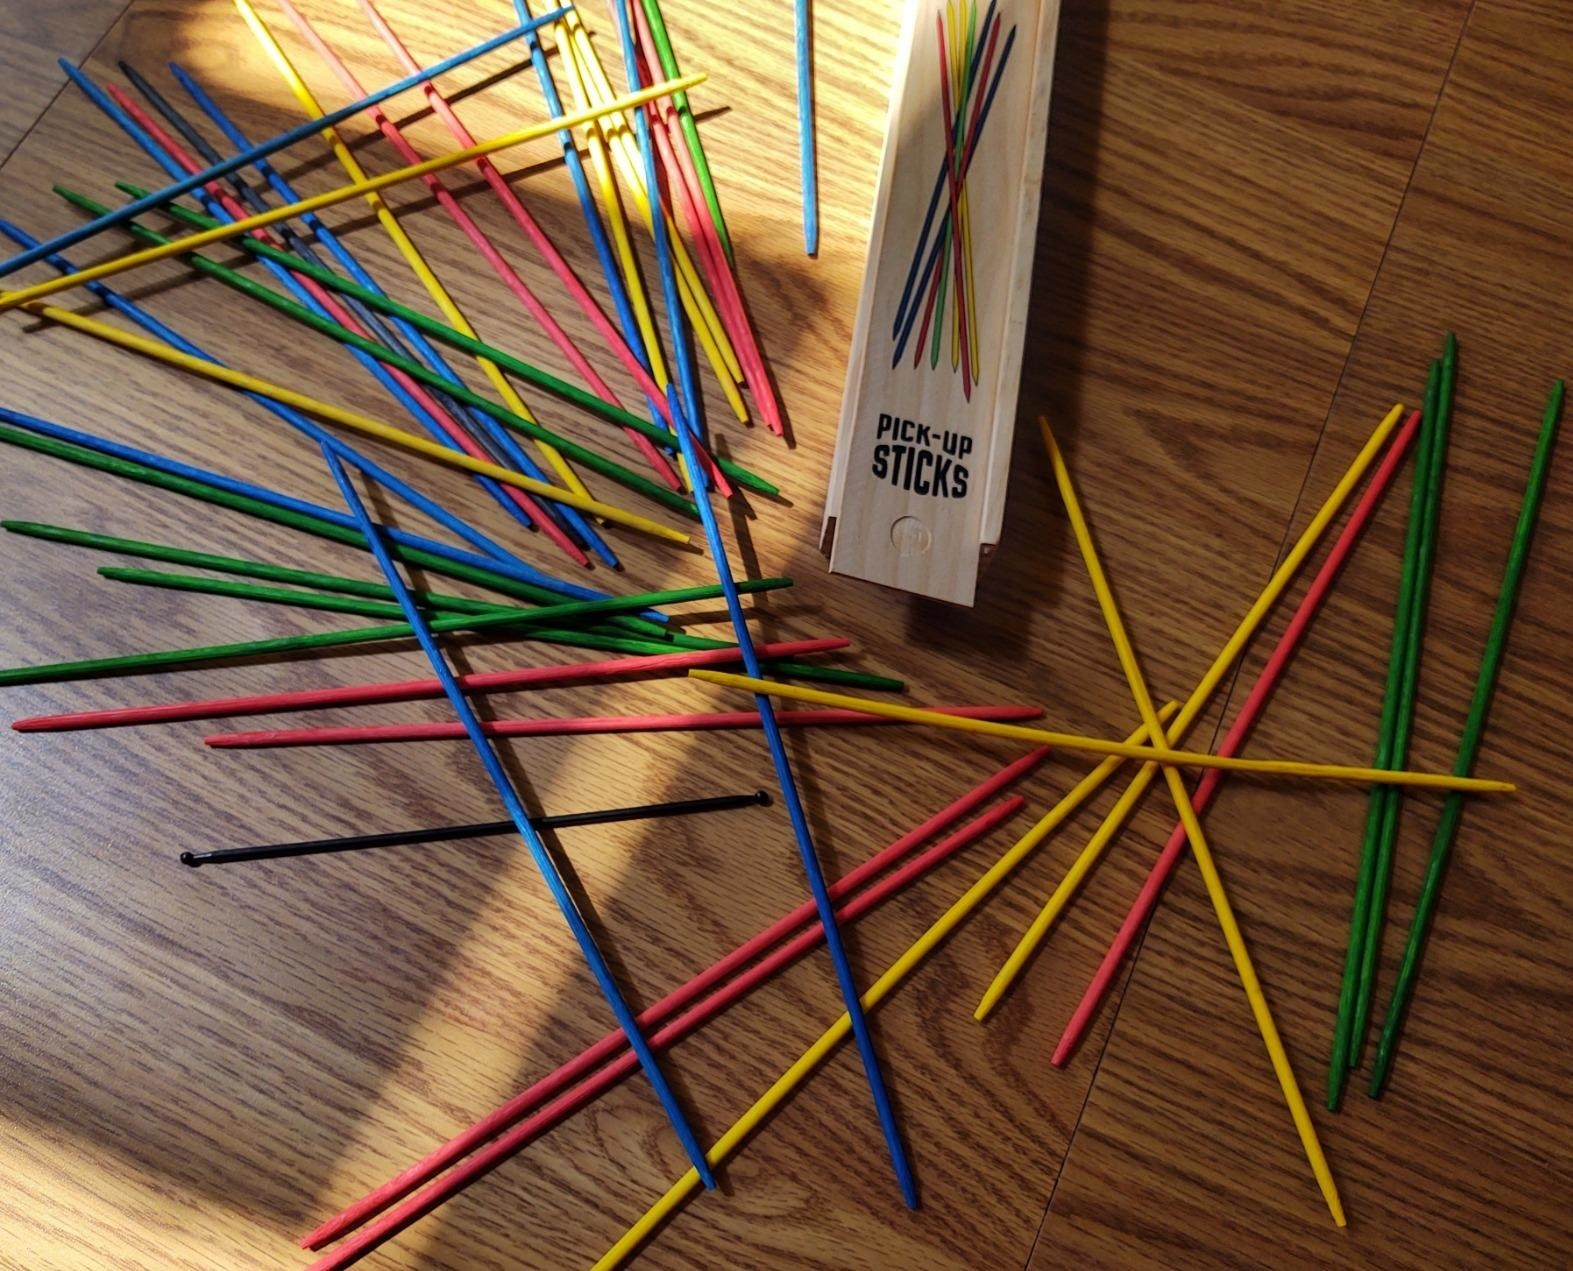 Reviewer photo of the colored sticks